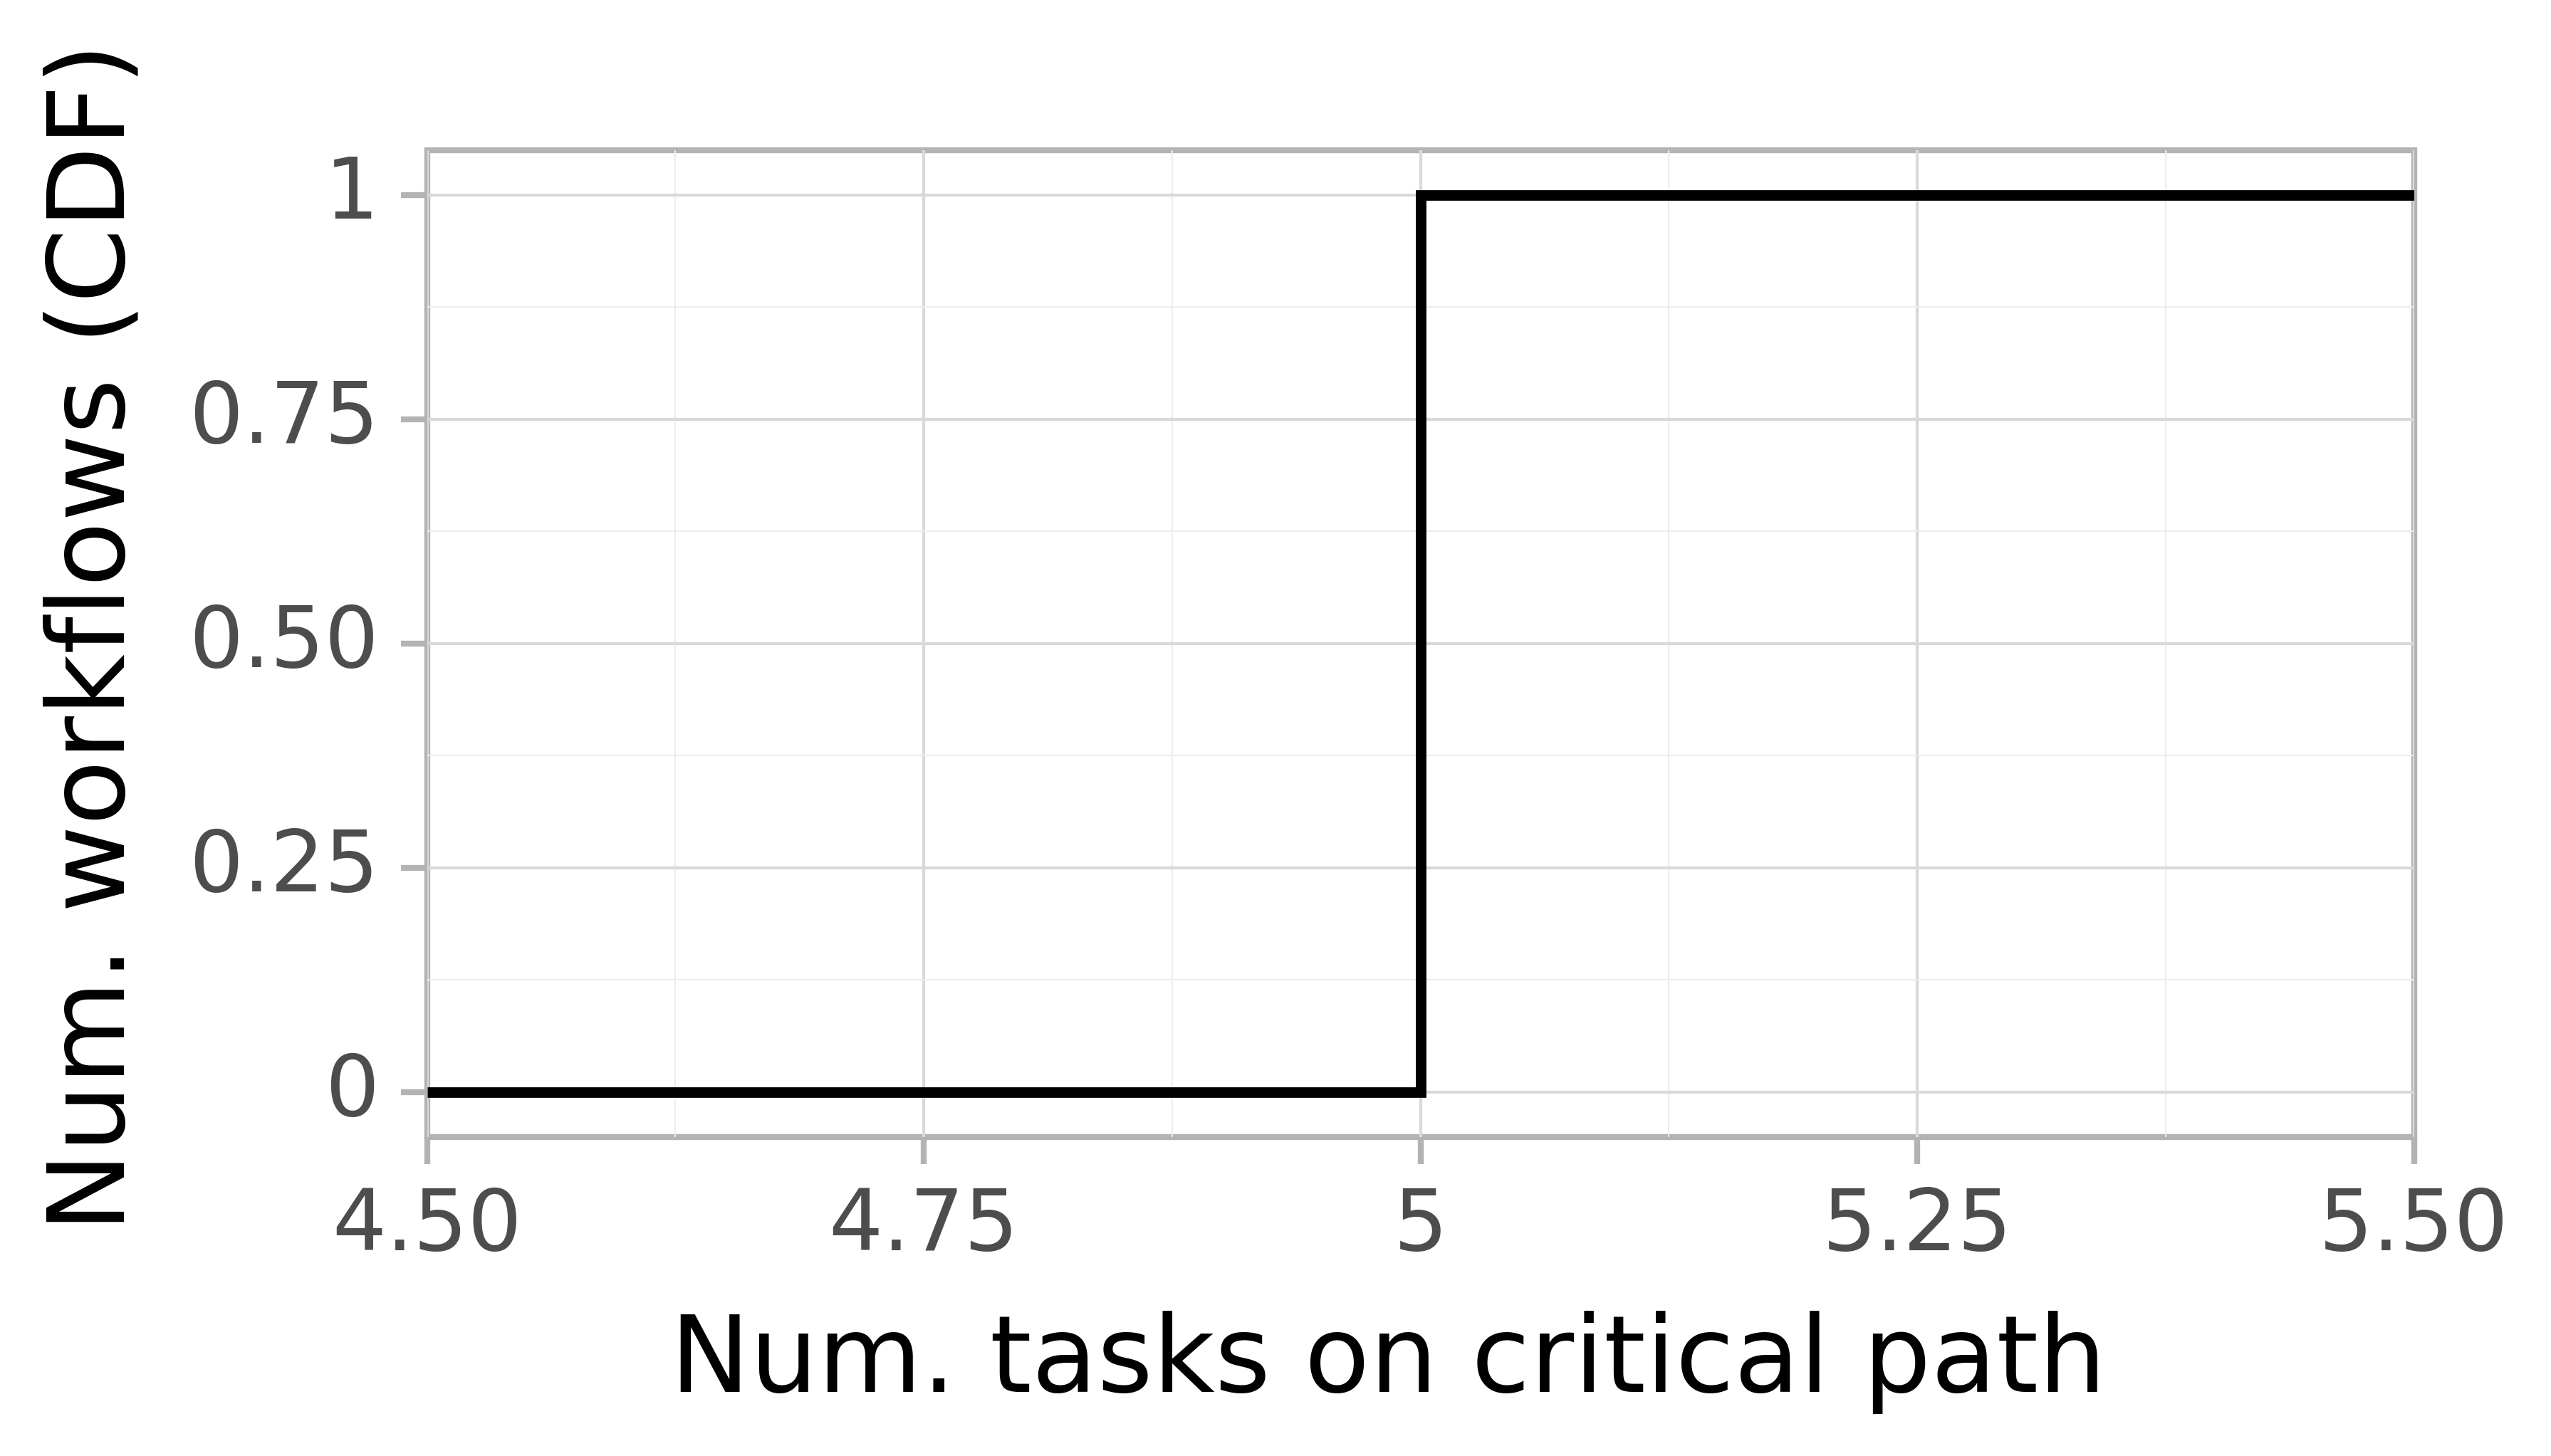 Job critical path task count graph for the askalon-new_ee43 trace.